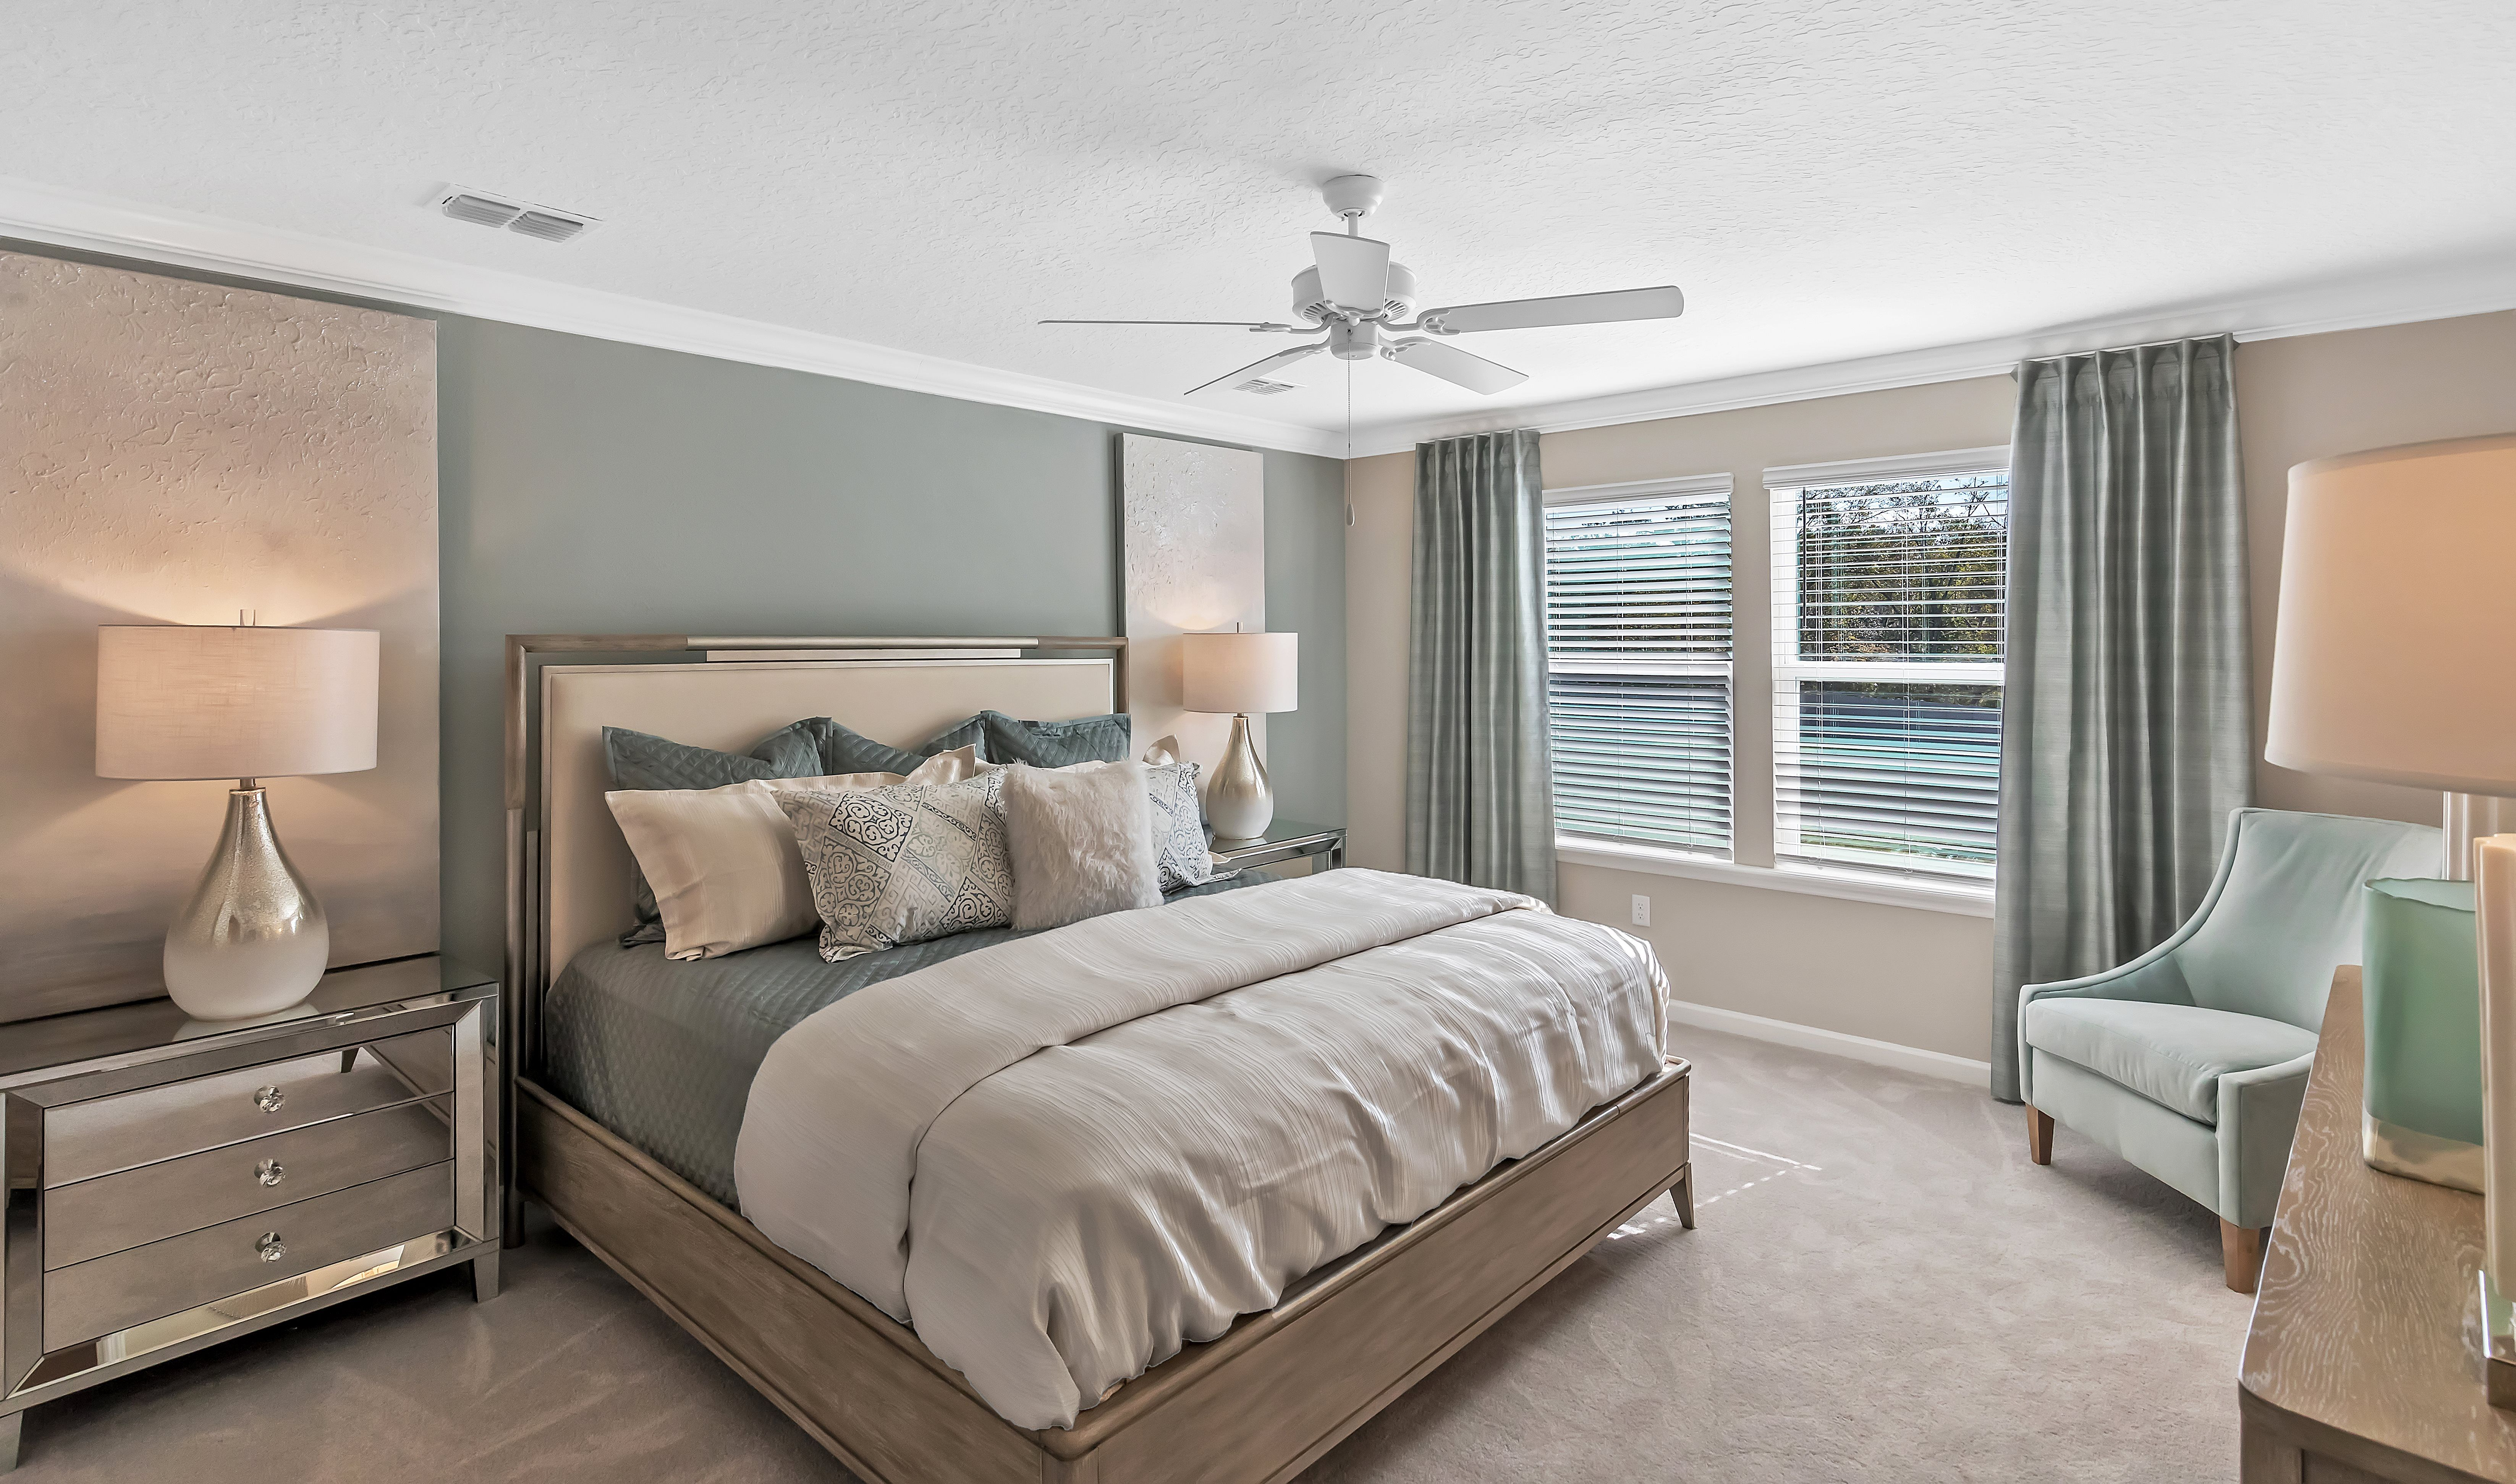 Bedroom featured in the TRUMAN By Lennar in Jacksonville-St. Augustine, FL